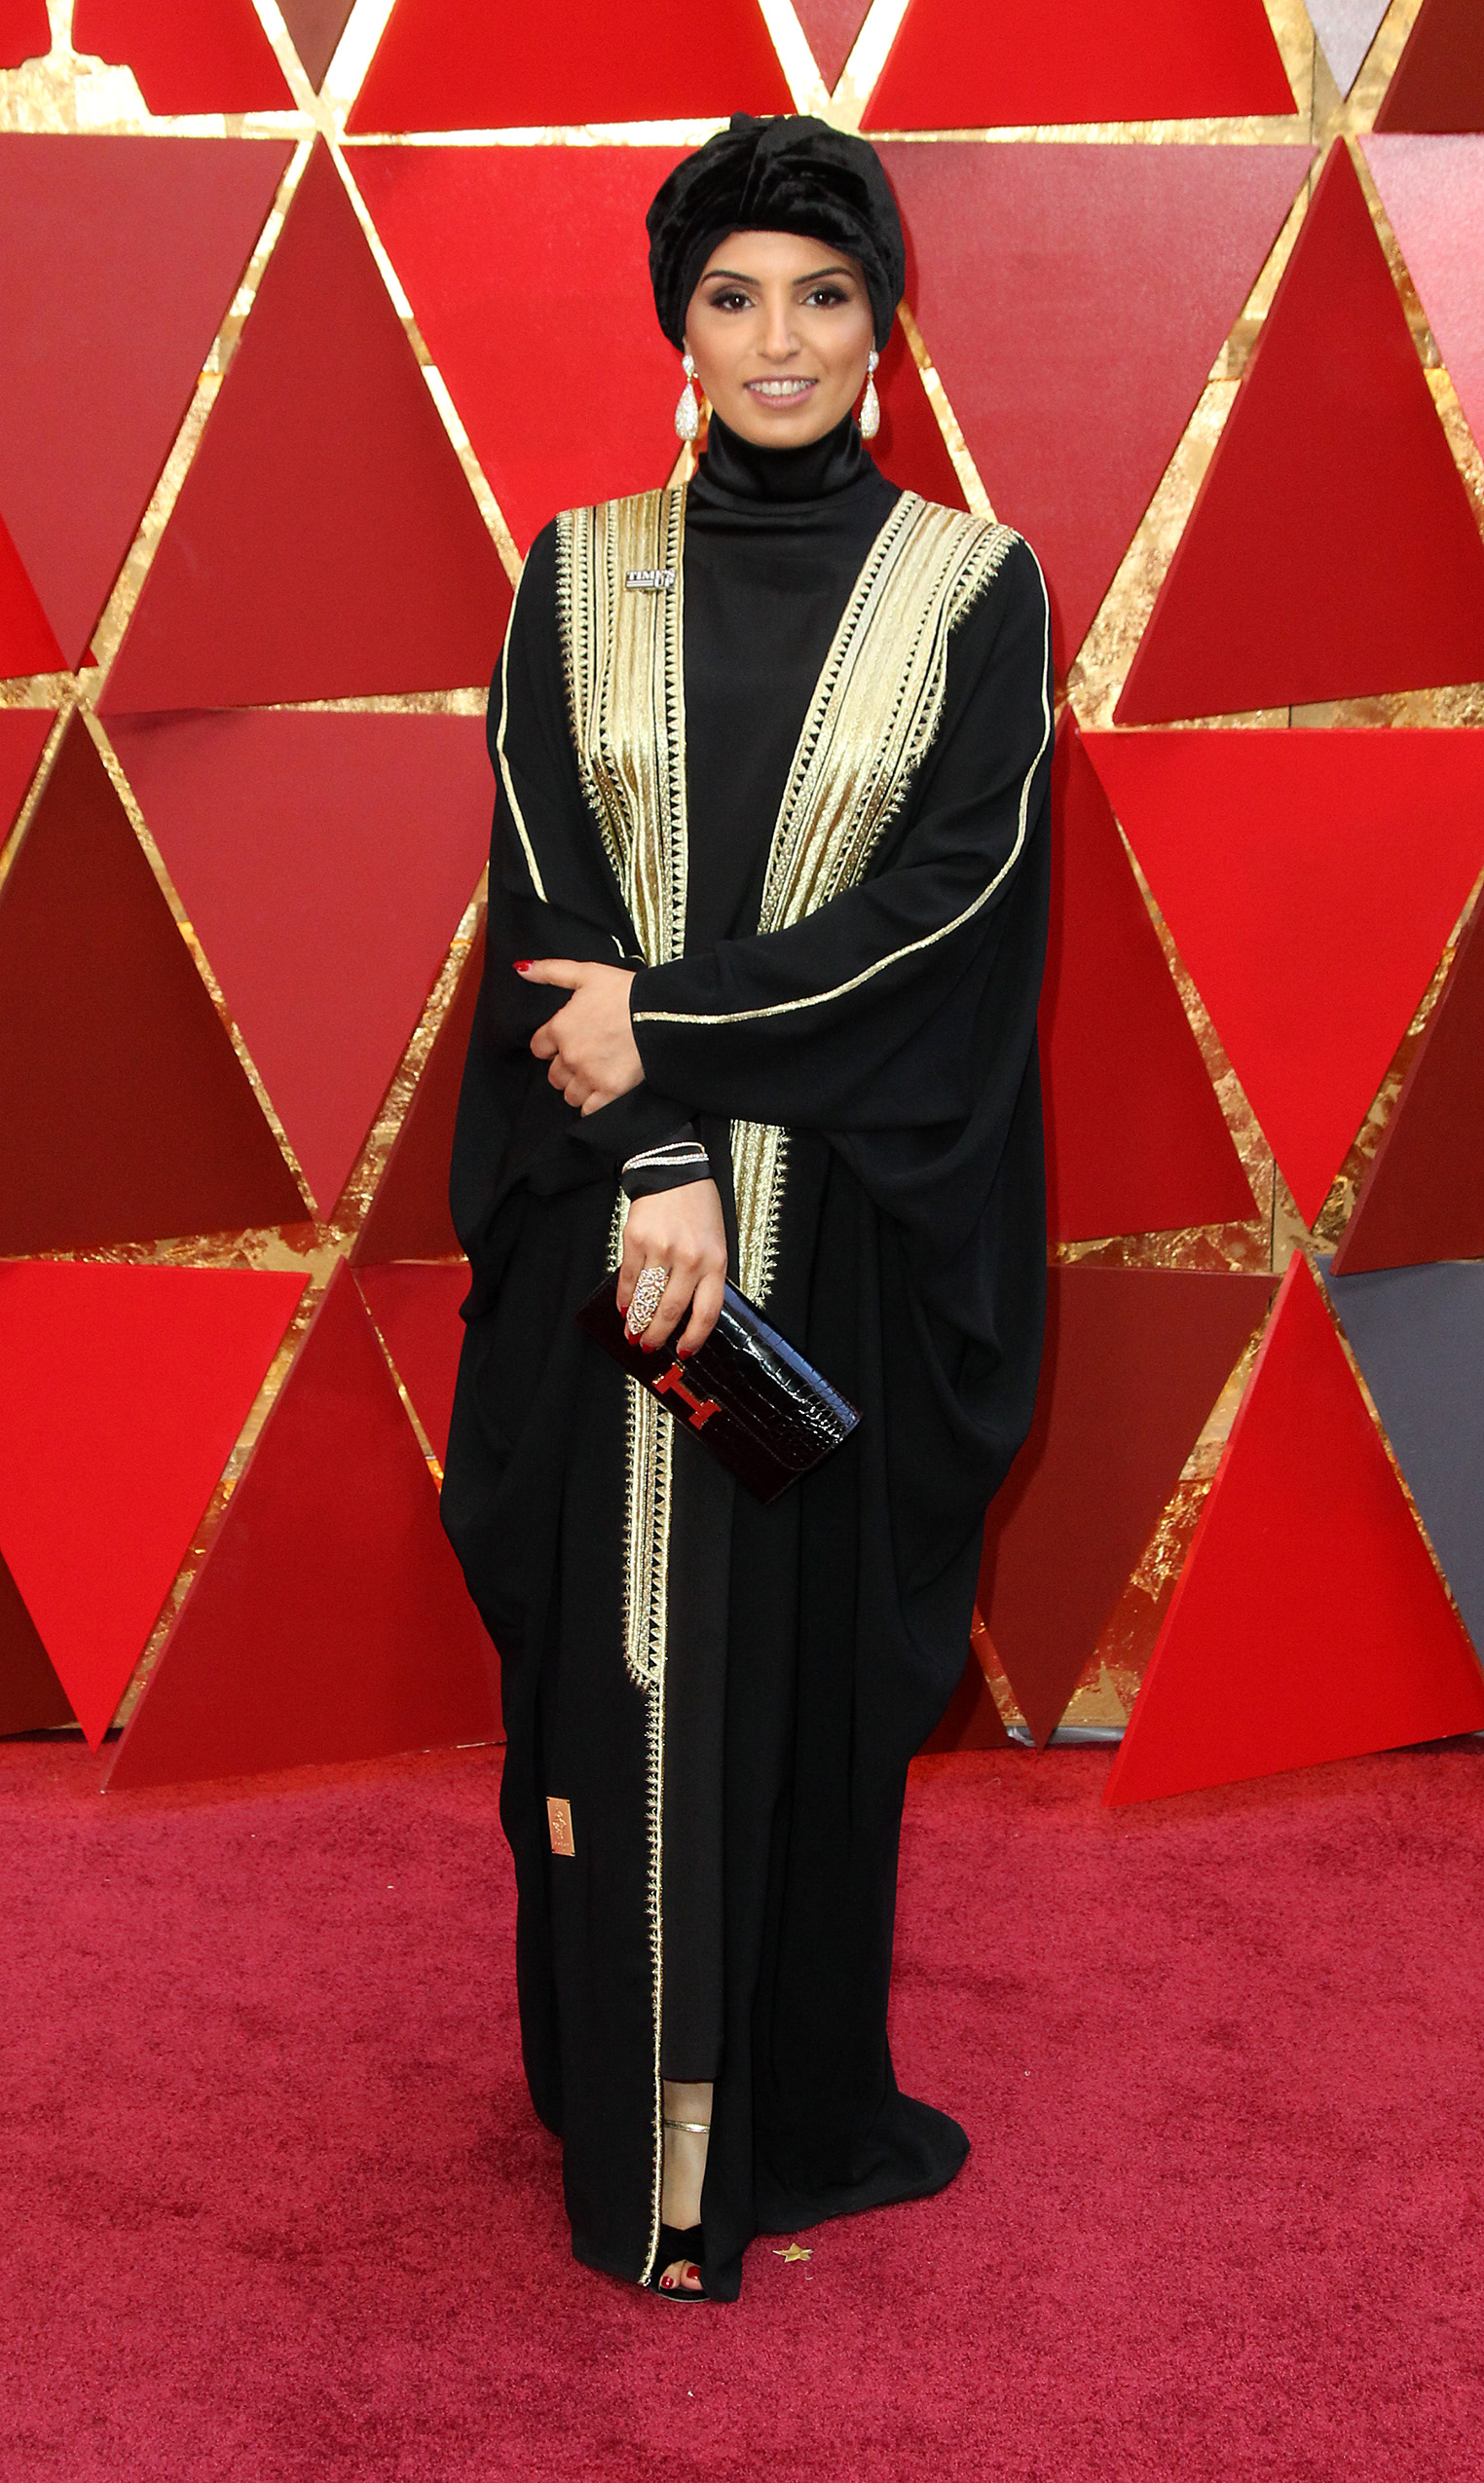 Unfortunately I could find very little information about this beauty, who is the{&amp;nbsp;}Doha Film Institute CEO, online, but I couldn't get over how effortlessly glam her Oscars look was, from the on-point makeup to the perfect styling. (Image: Adriana M. Barraza/WENN.com)<p></p>